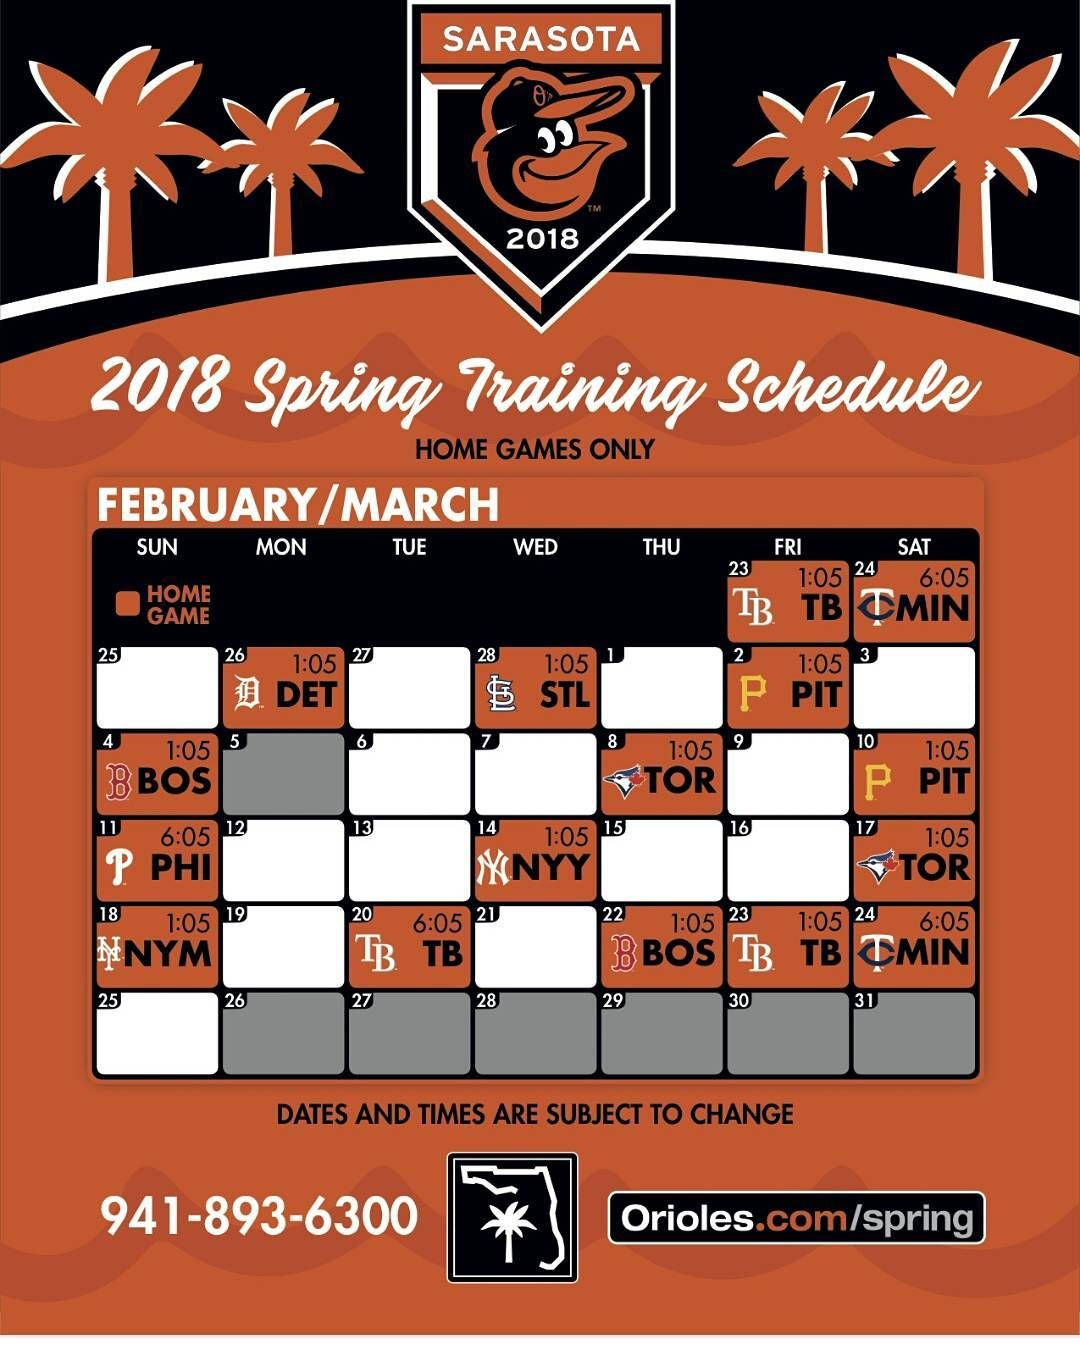 Orioles Spring Training Schedule 2019 The orioles schedule for the 2018 spring training #orioles